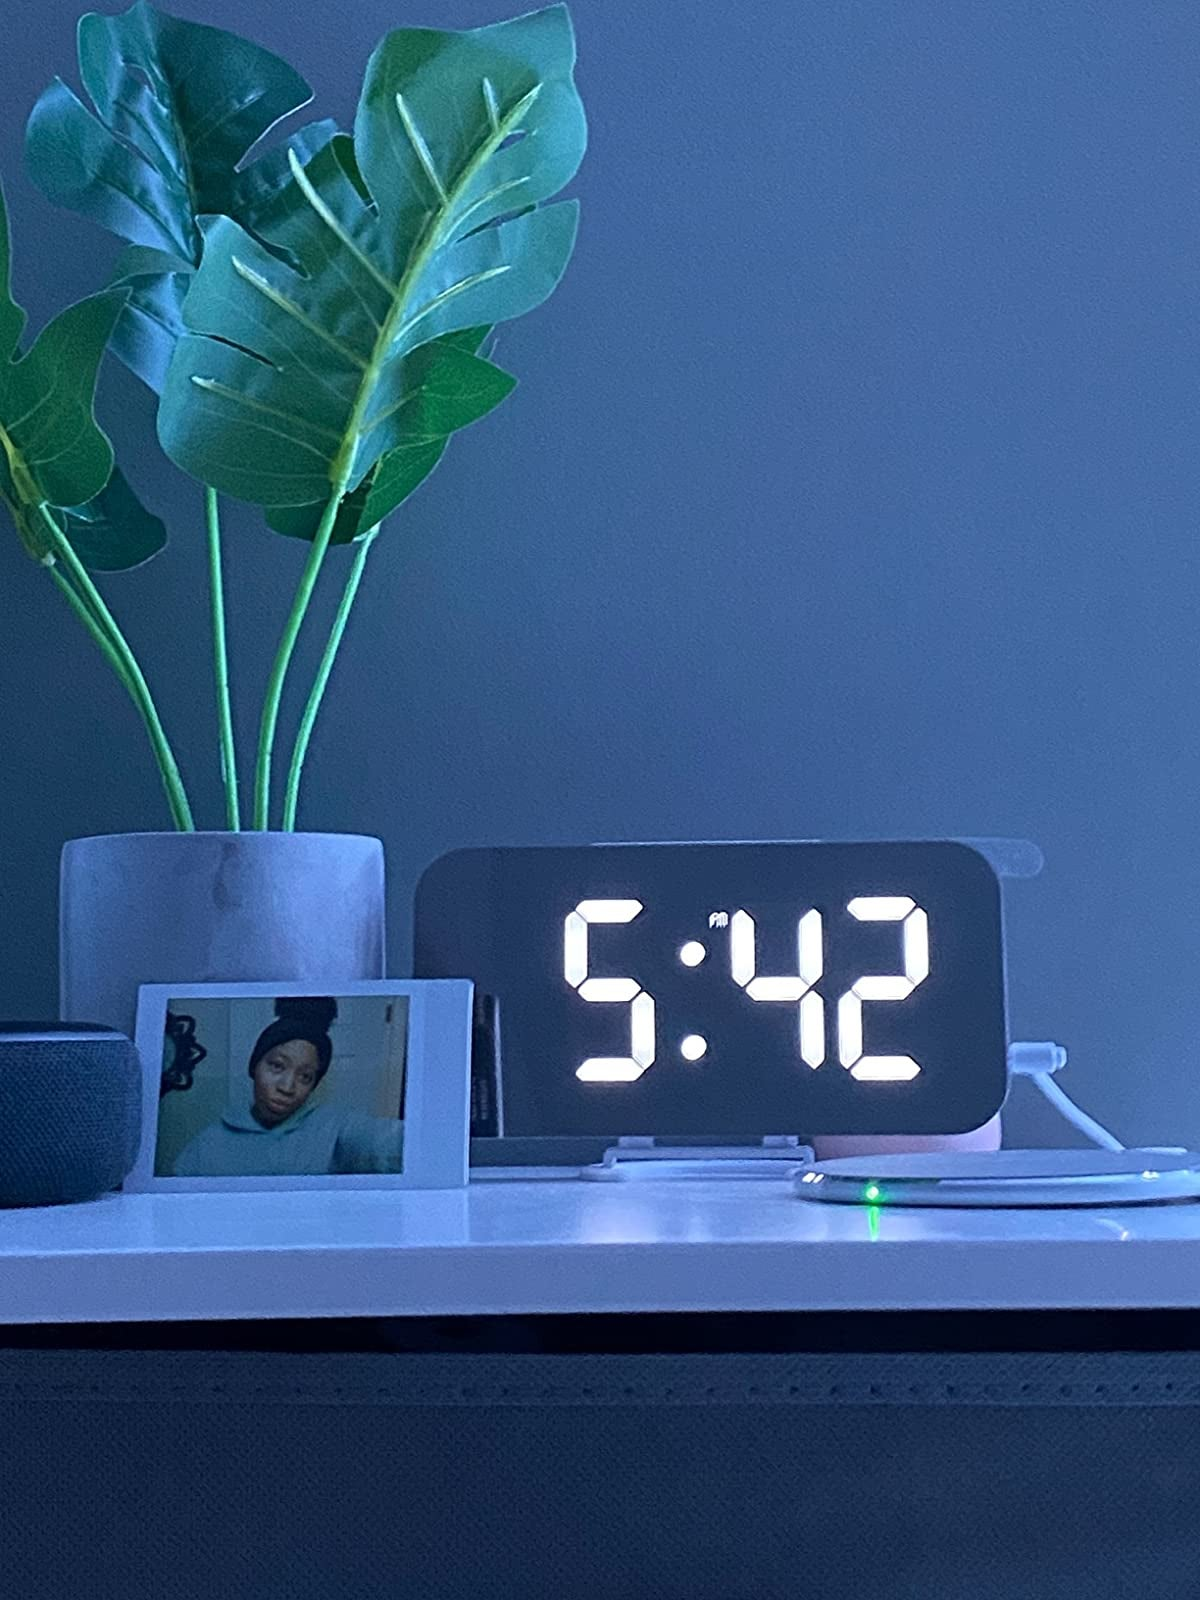 a reviewer's bright mirrored clock